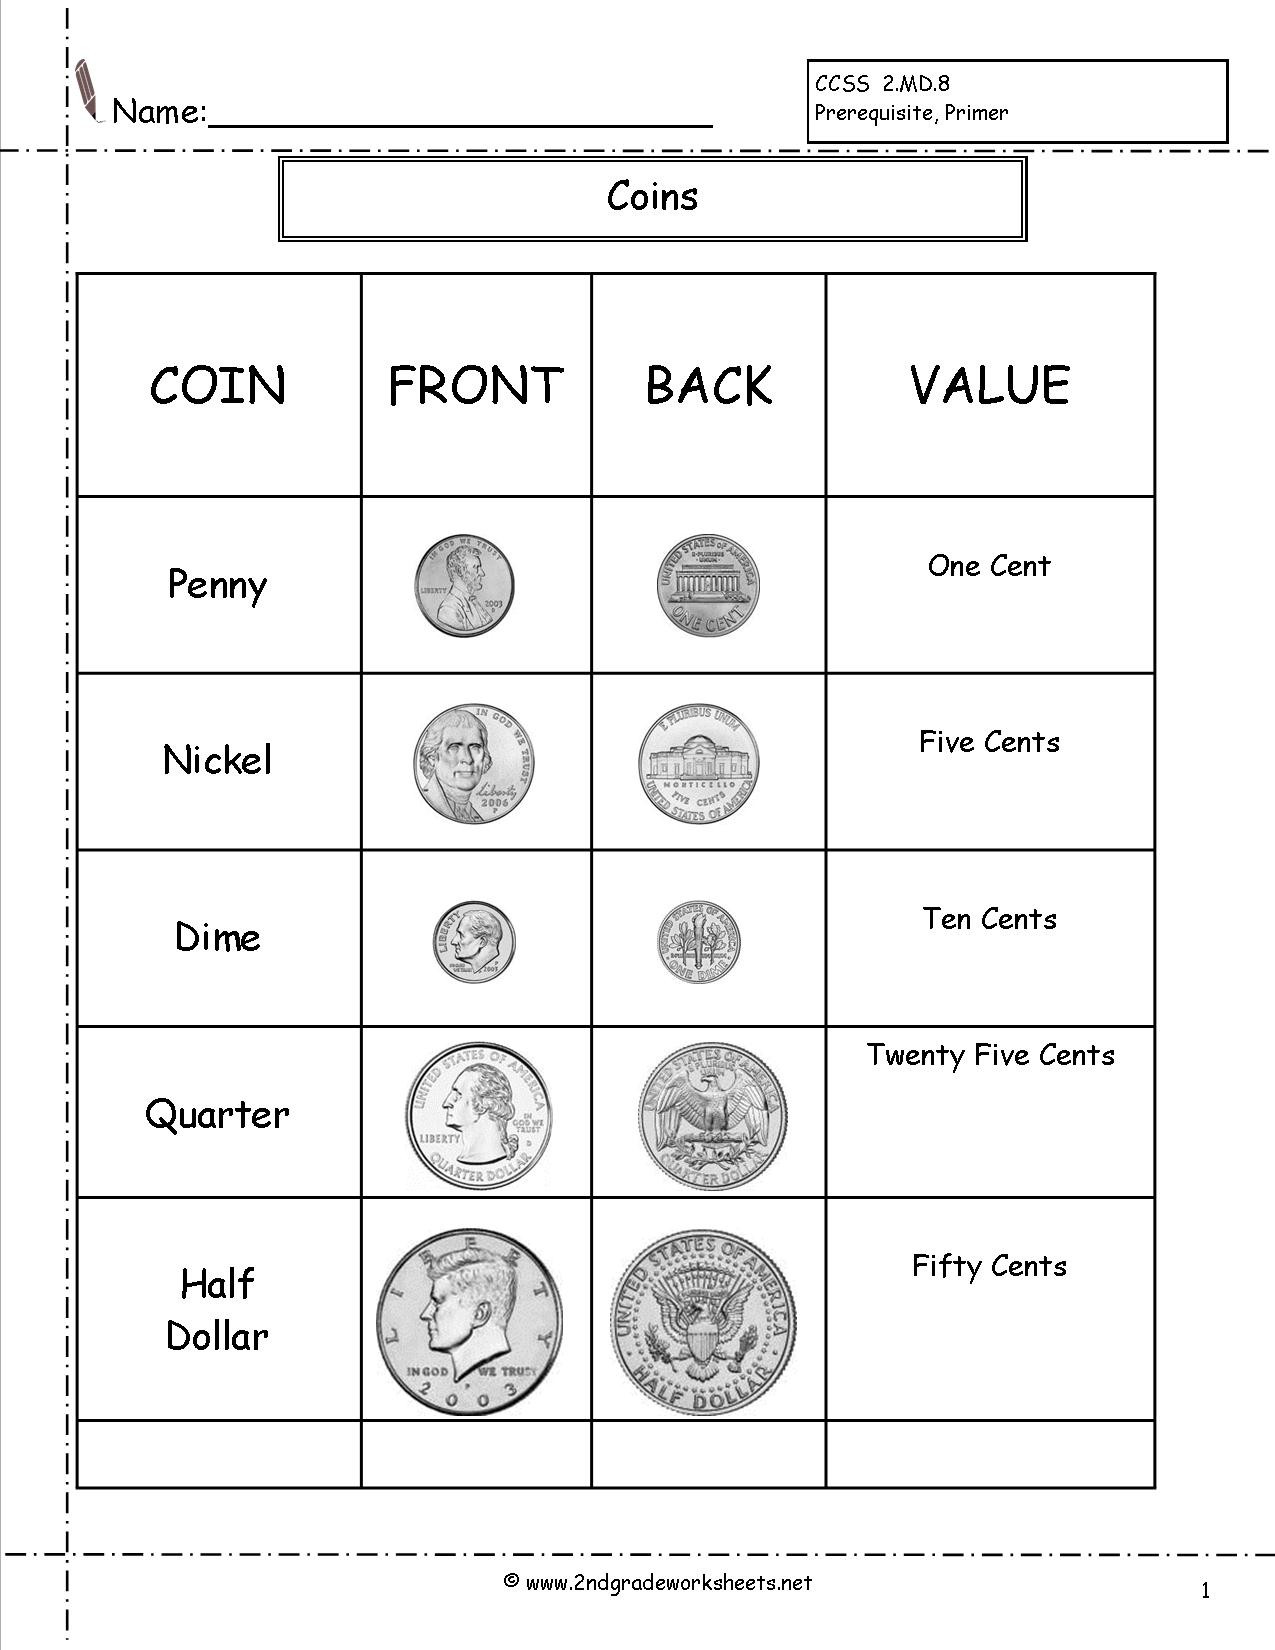 Counting Coins Worksheets 2nd Grade Counting Coins and Money Worksheets Printouts Coin for 2nd